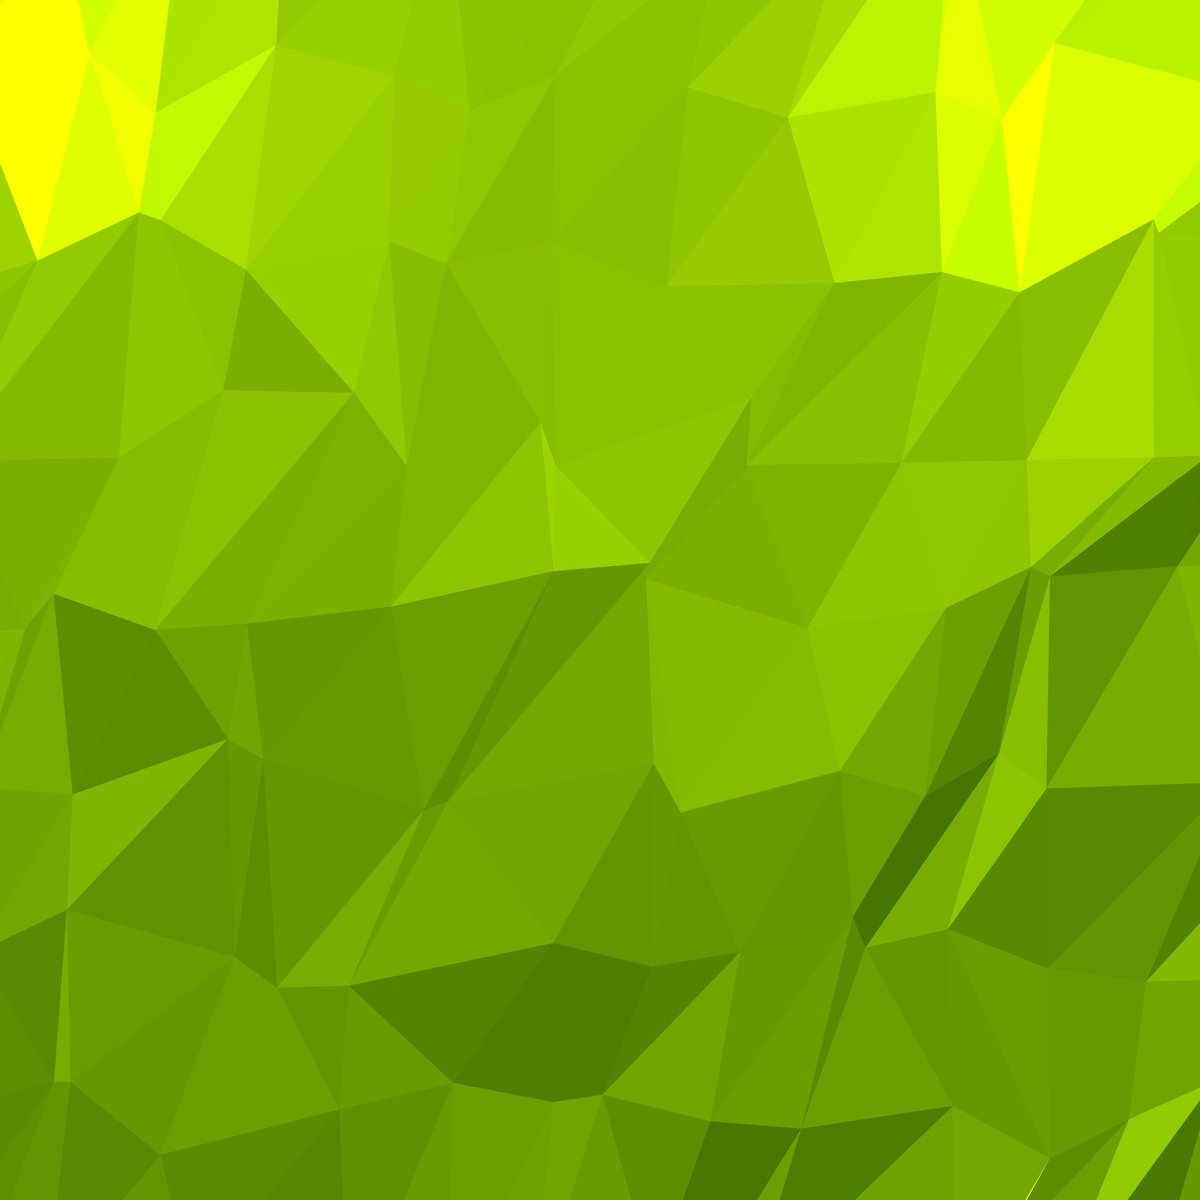 polygonal-low-poly-photo-files-texture-3-1140790